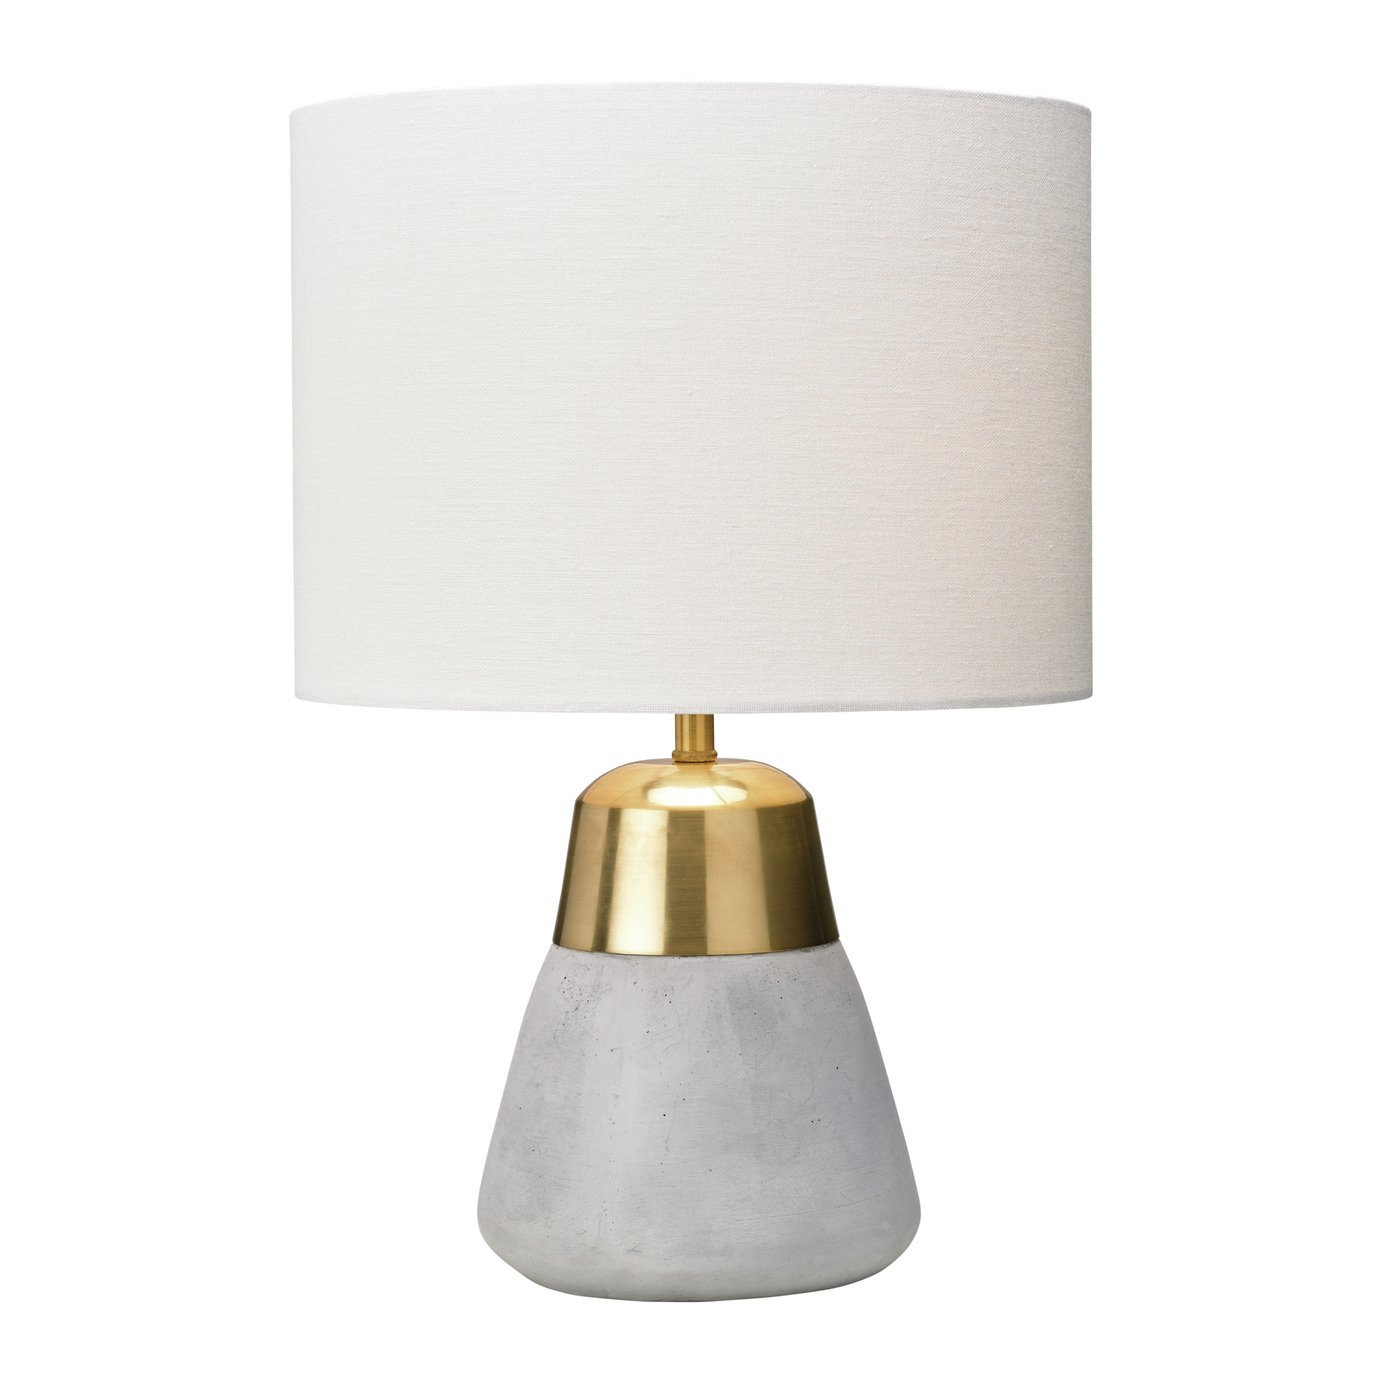 Village at Home Jasper Table Lamp - Ivory and Gold